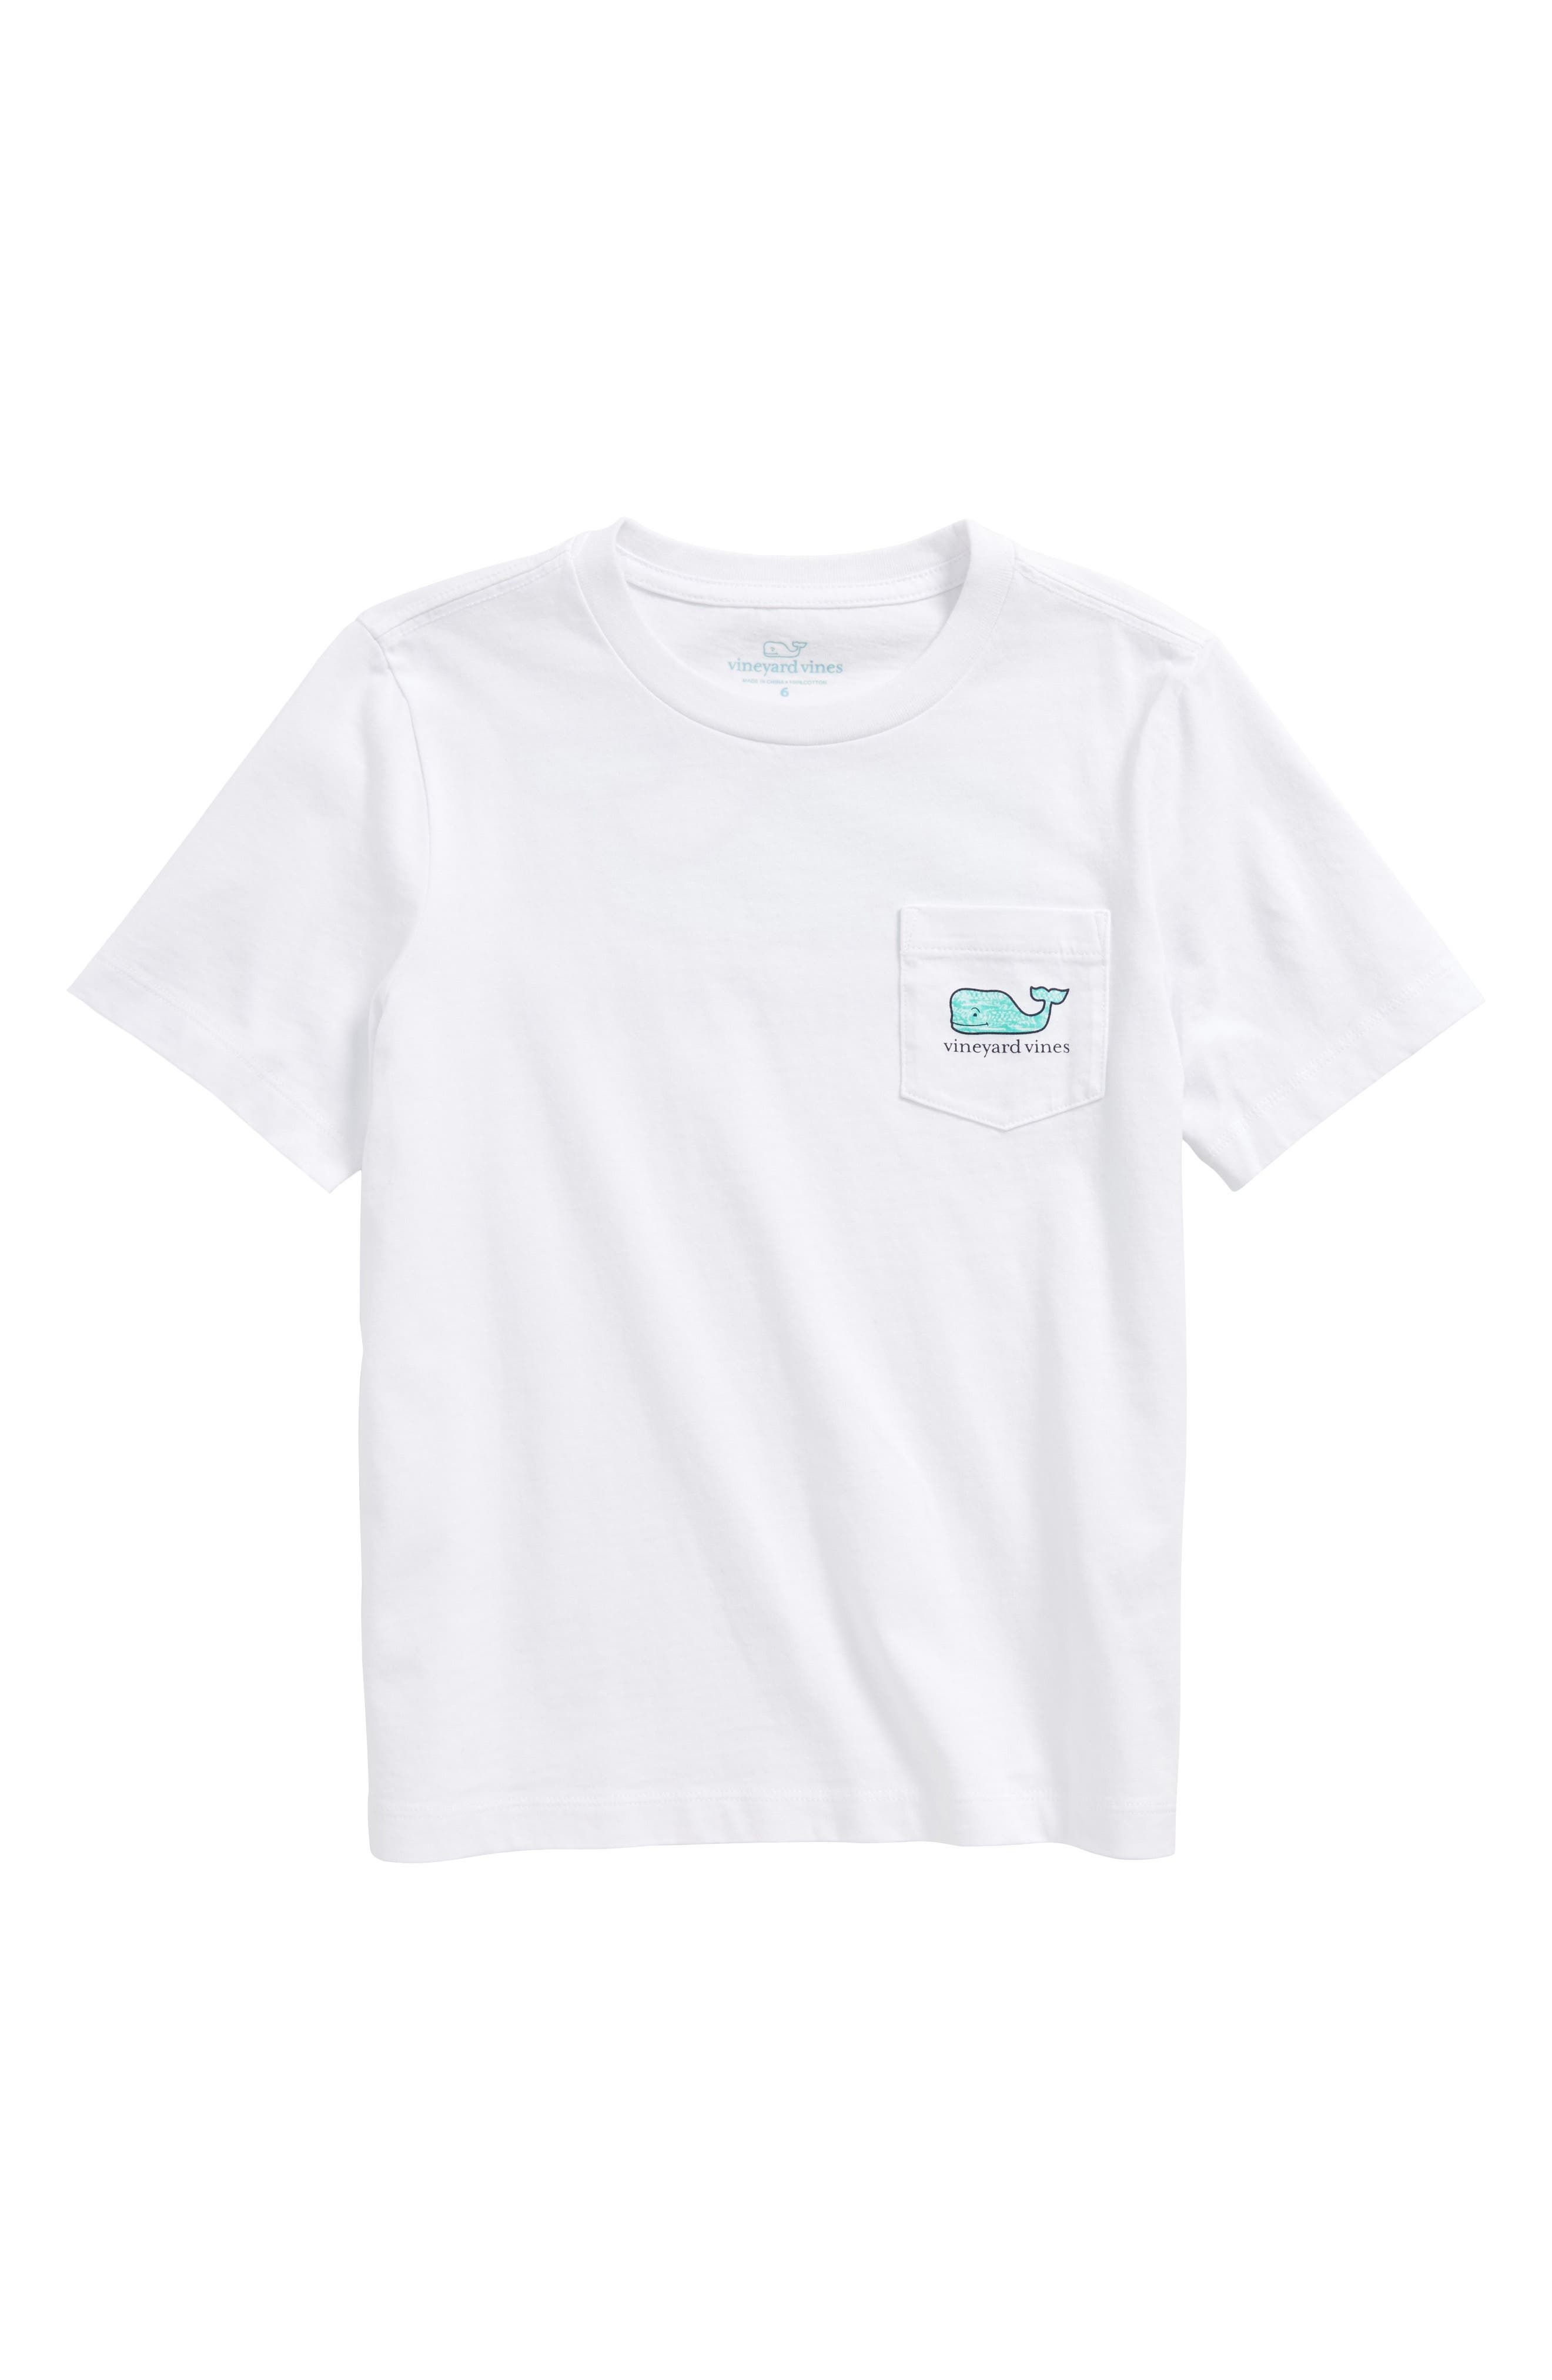 vineyard vines Fish Gate Whale T-Shirt (Toddler Boys & Little Boys)